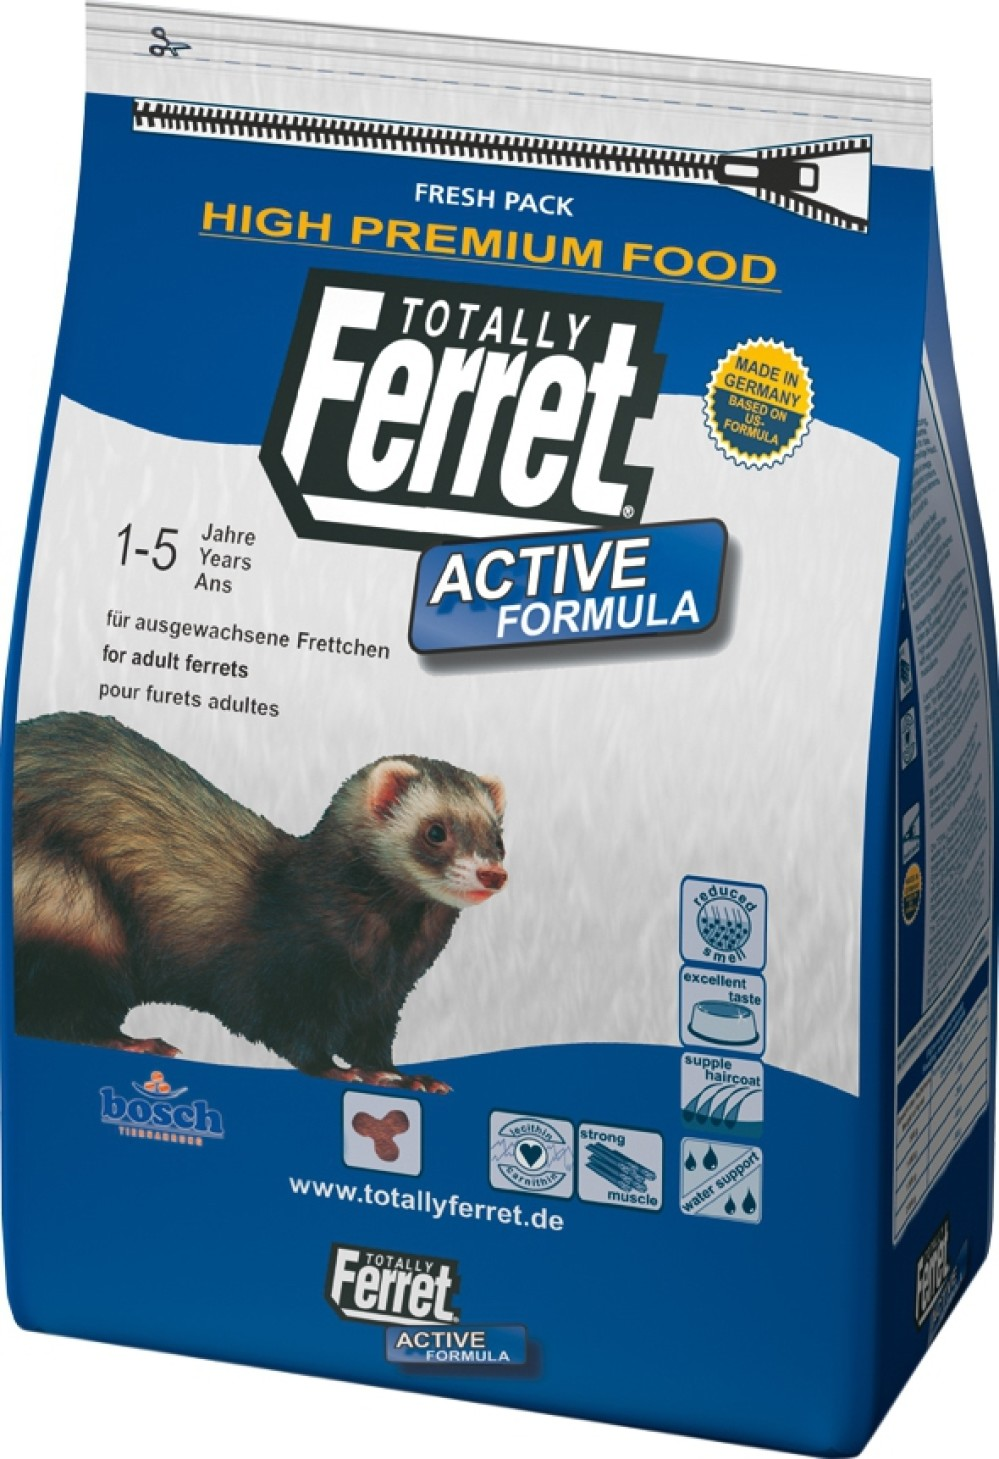 zoo/Bosch_Totally_Ferret_Active